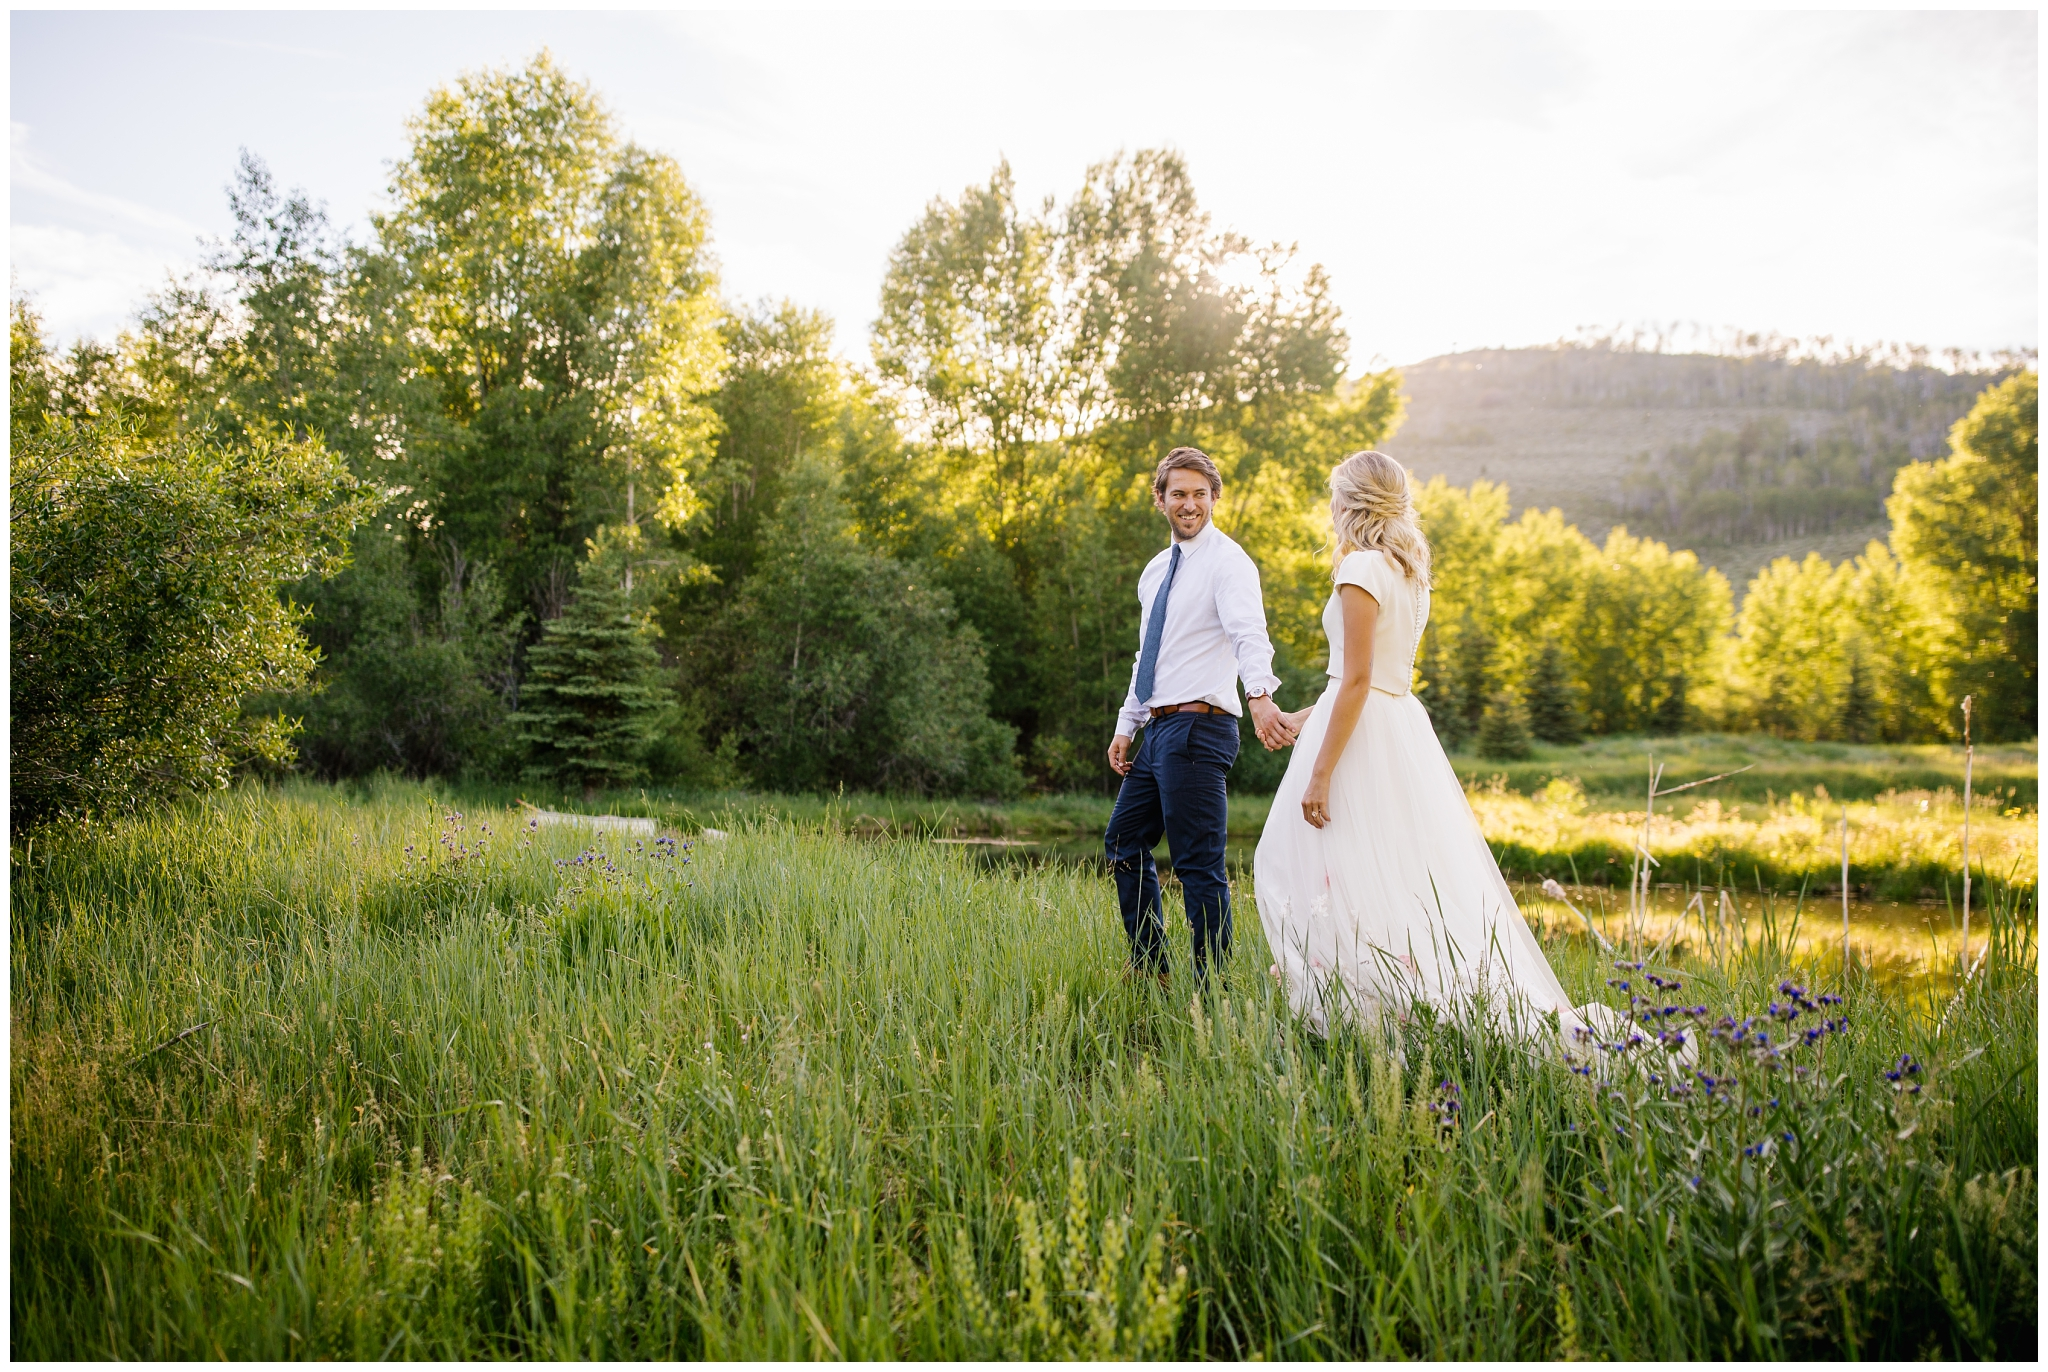 Lizzie-B-Imagery-Utah-Wedding-Photographer-Park-City-Photographer_0035.jpg